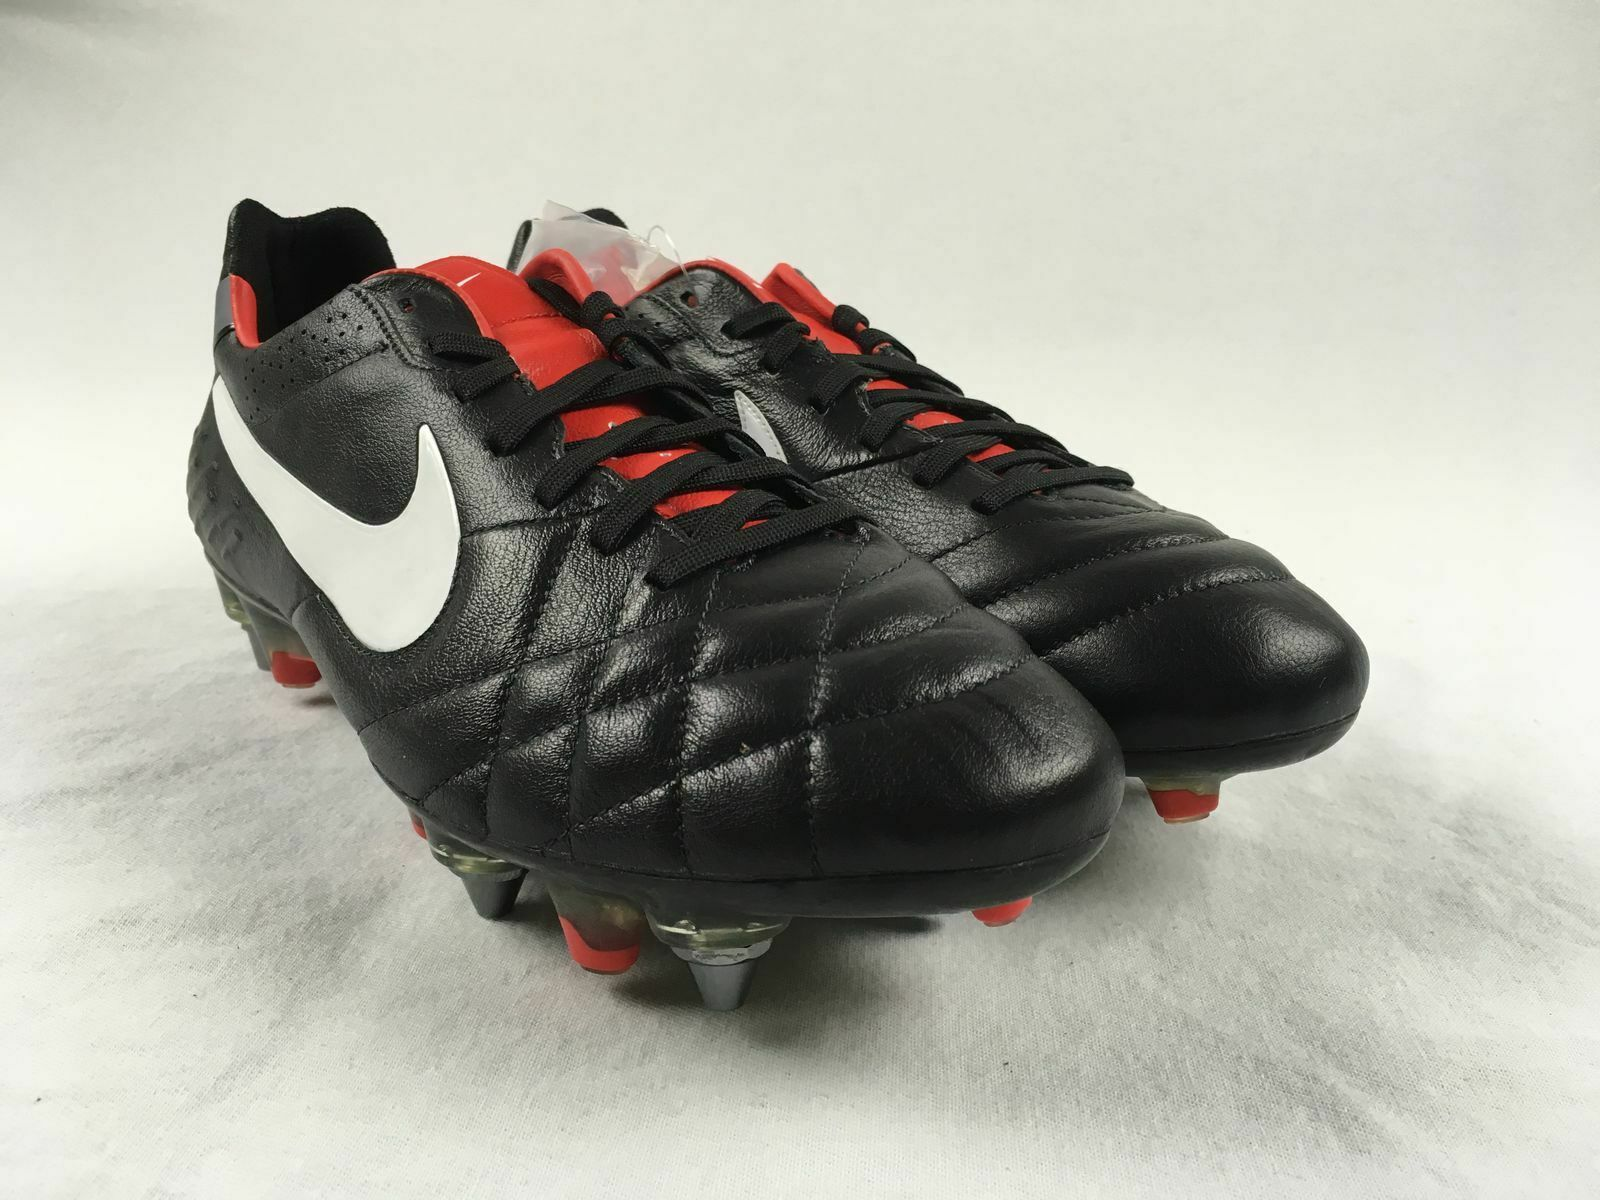 NEW Nike Tiempo Legend IV SG Pro - Black Red Cleats (Men's Multiple Sizes)